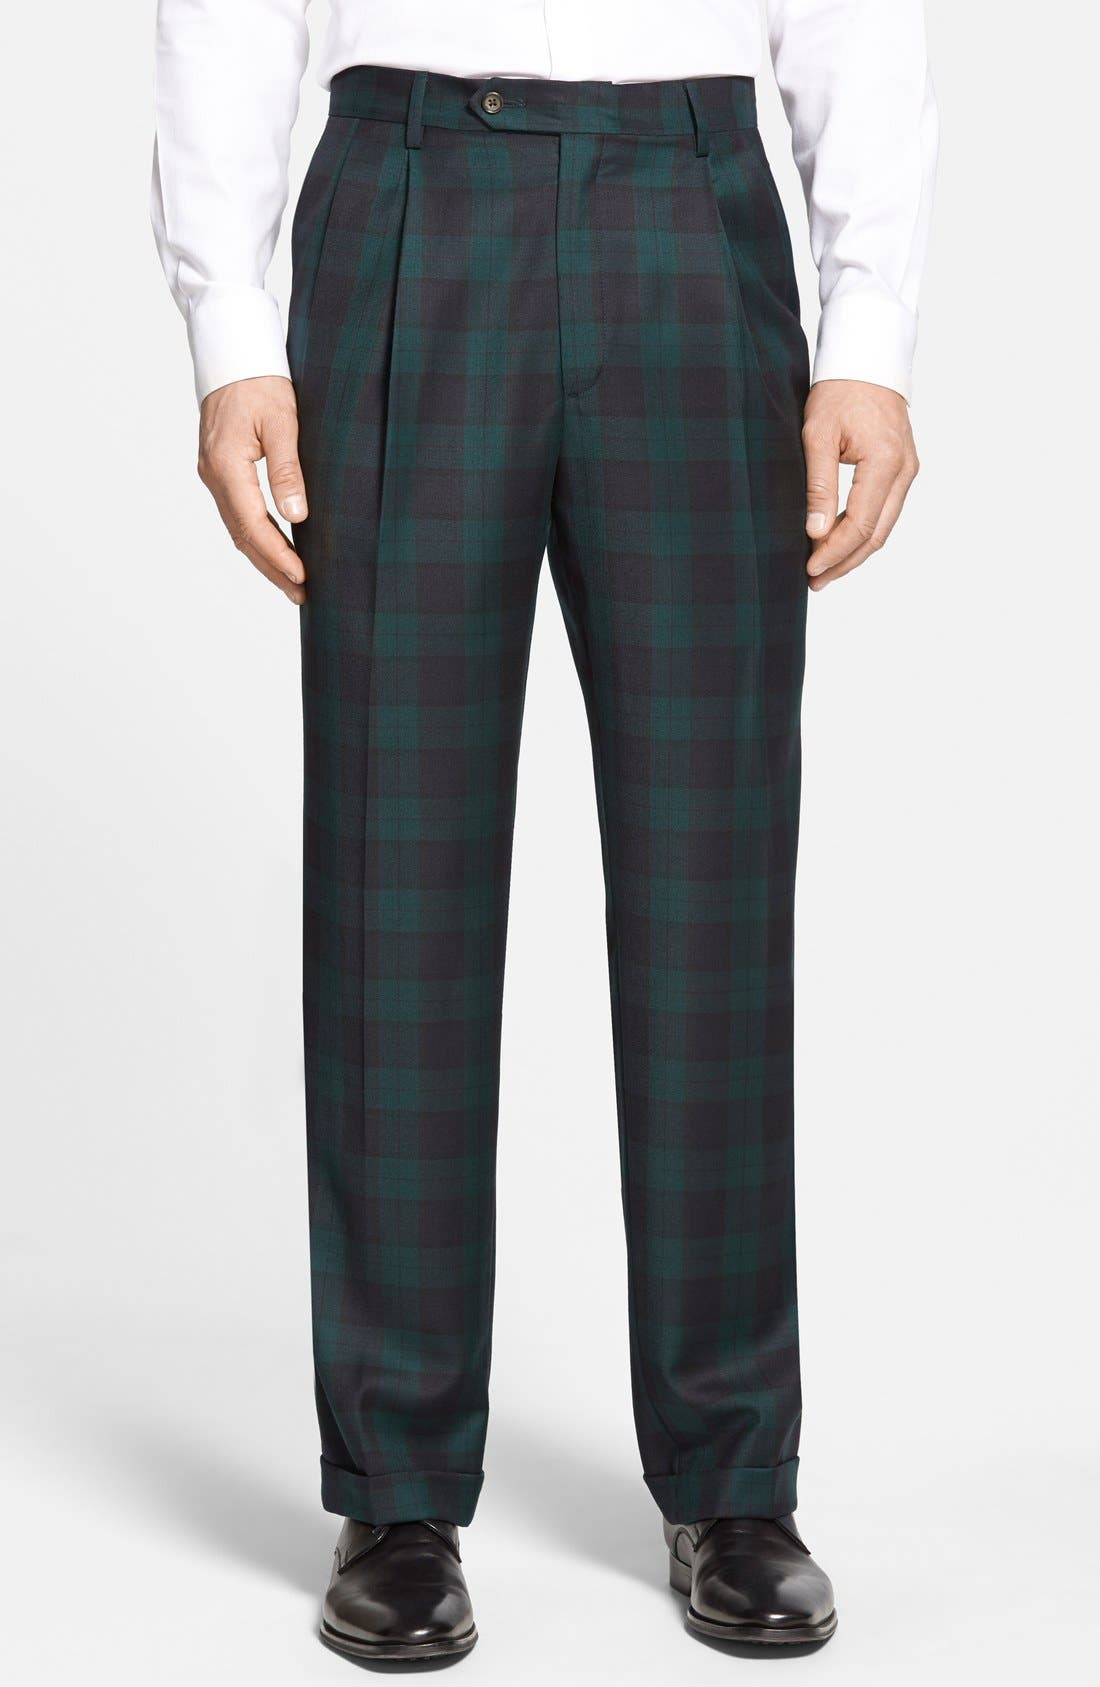 1950s Men's Pants, Trousers, Shorts | Rockabilly Jeans, Greaser Styles Mens Berle Pleated Plaid Wool Trousers Size 42 x 32 - Green $175.00 AT vintagedancer.com